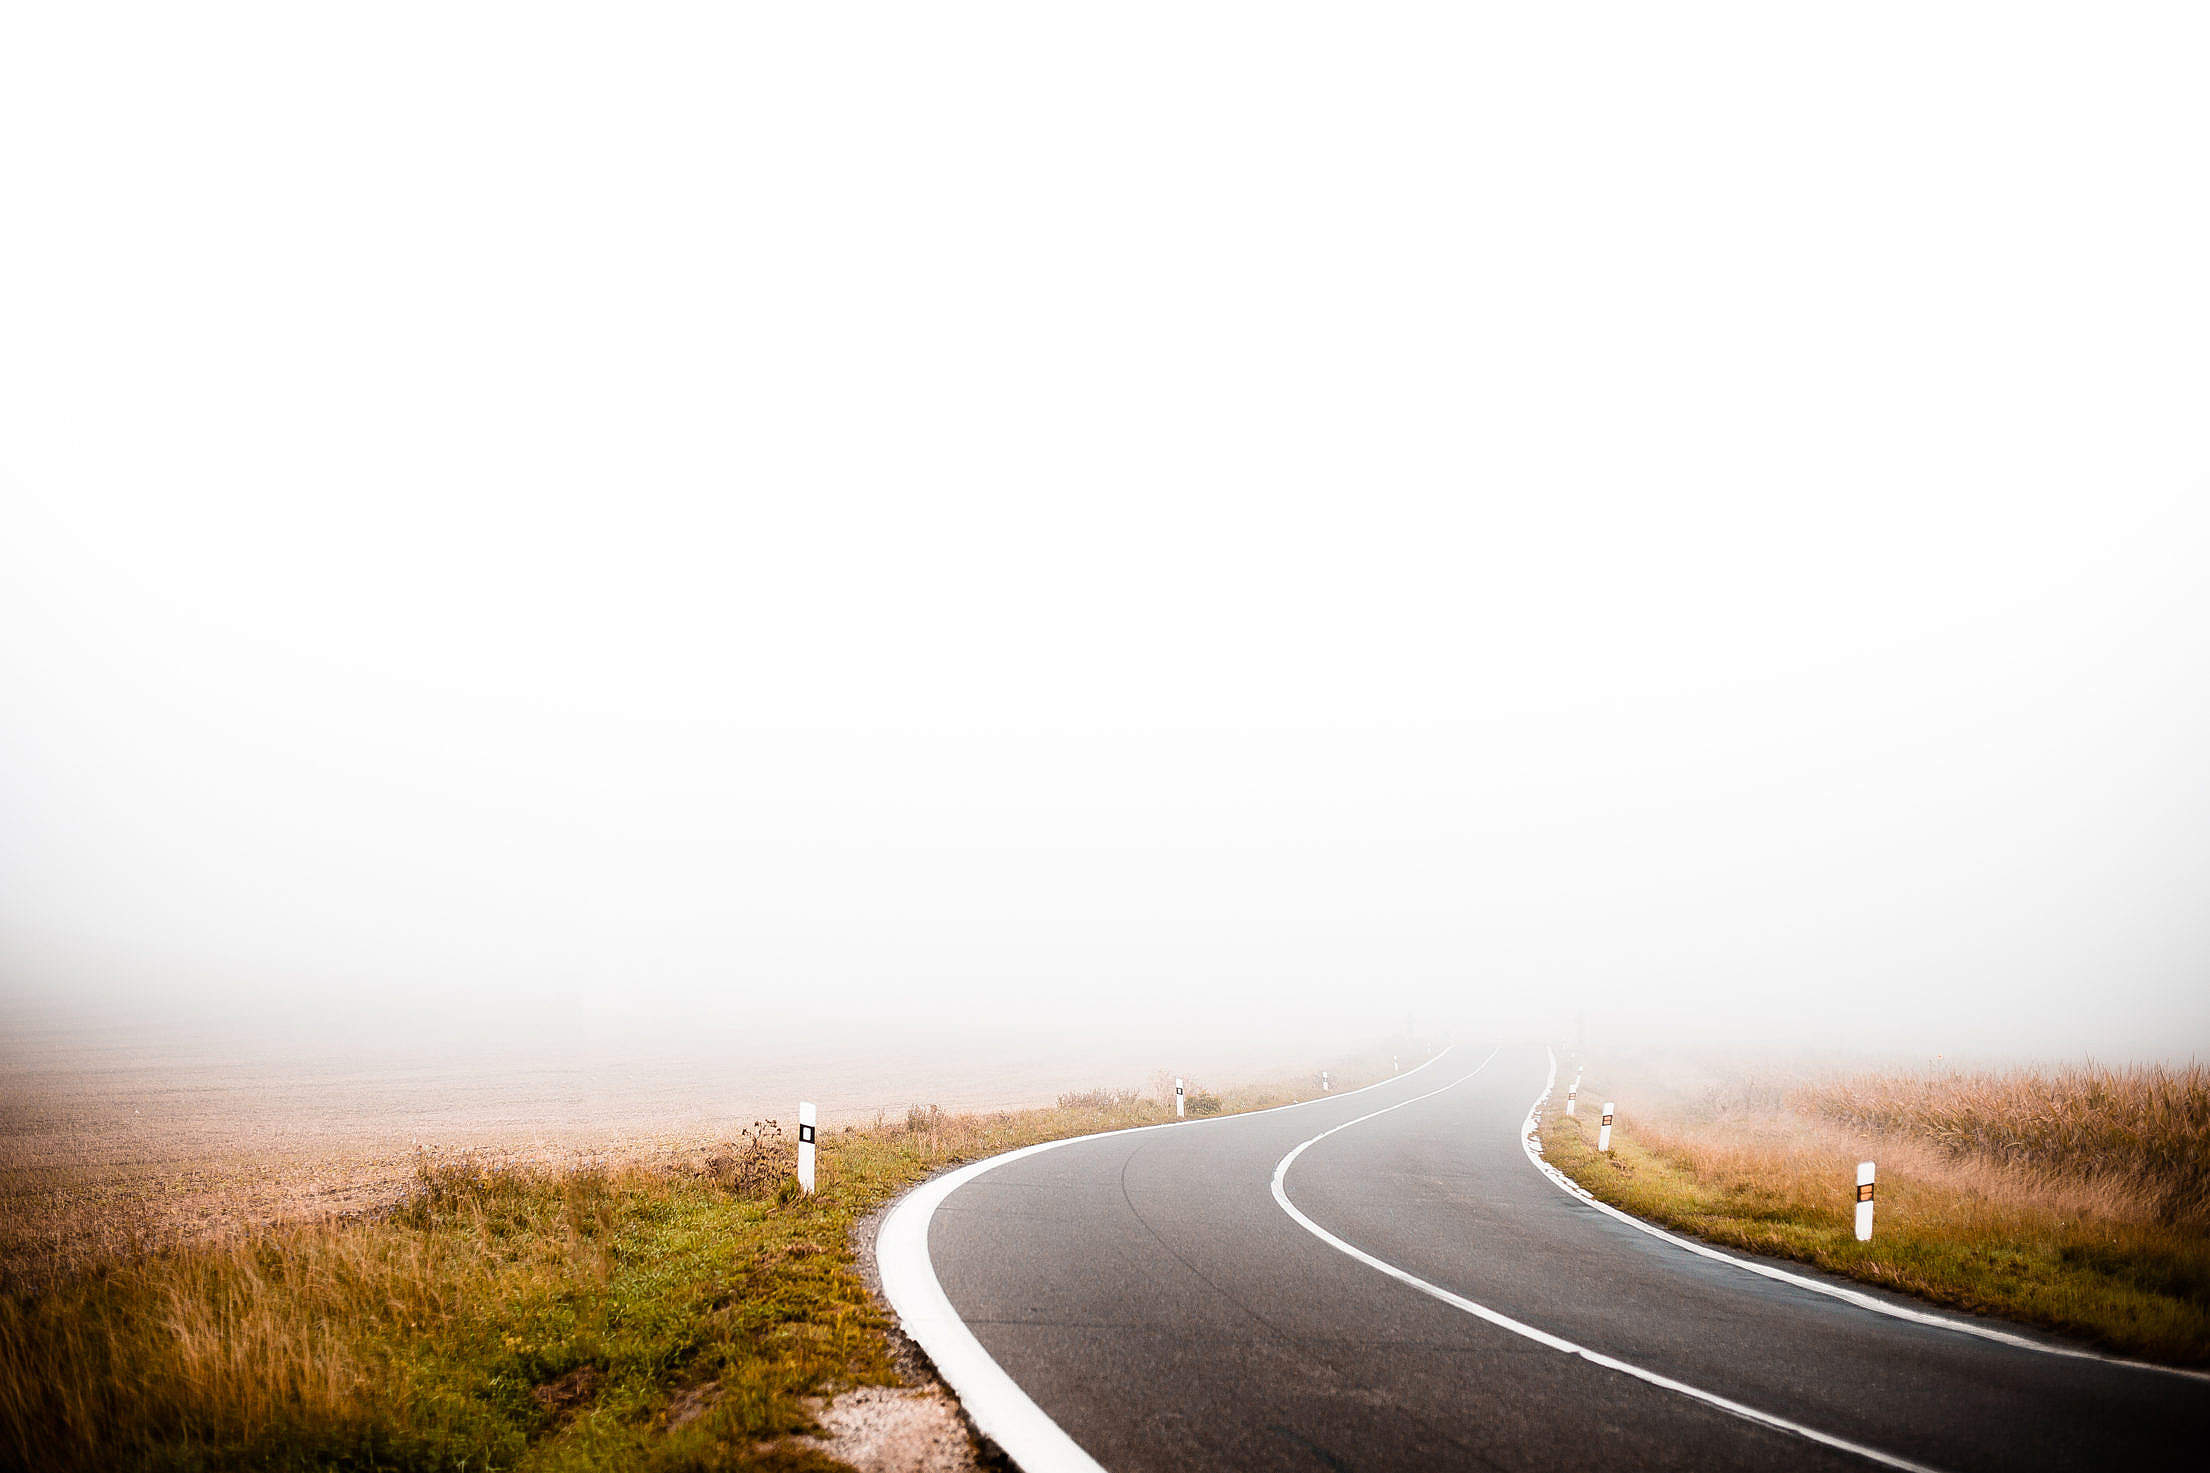 Lonely Foggy Road Free Stock Photo